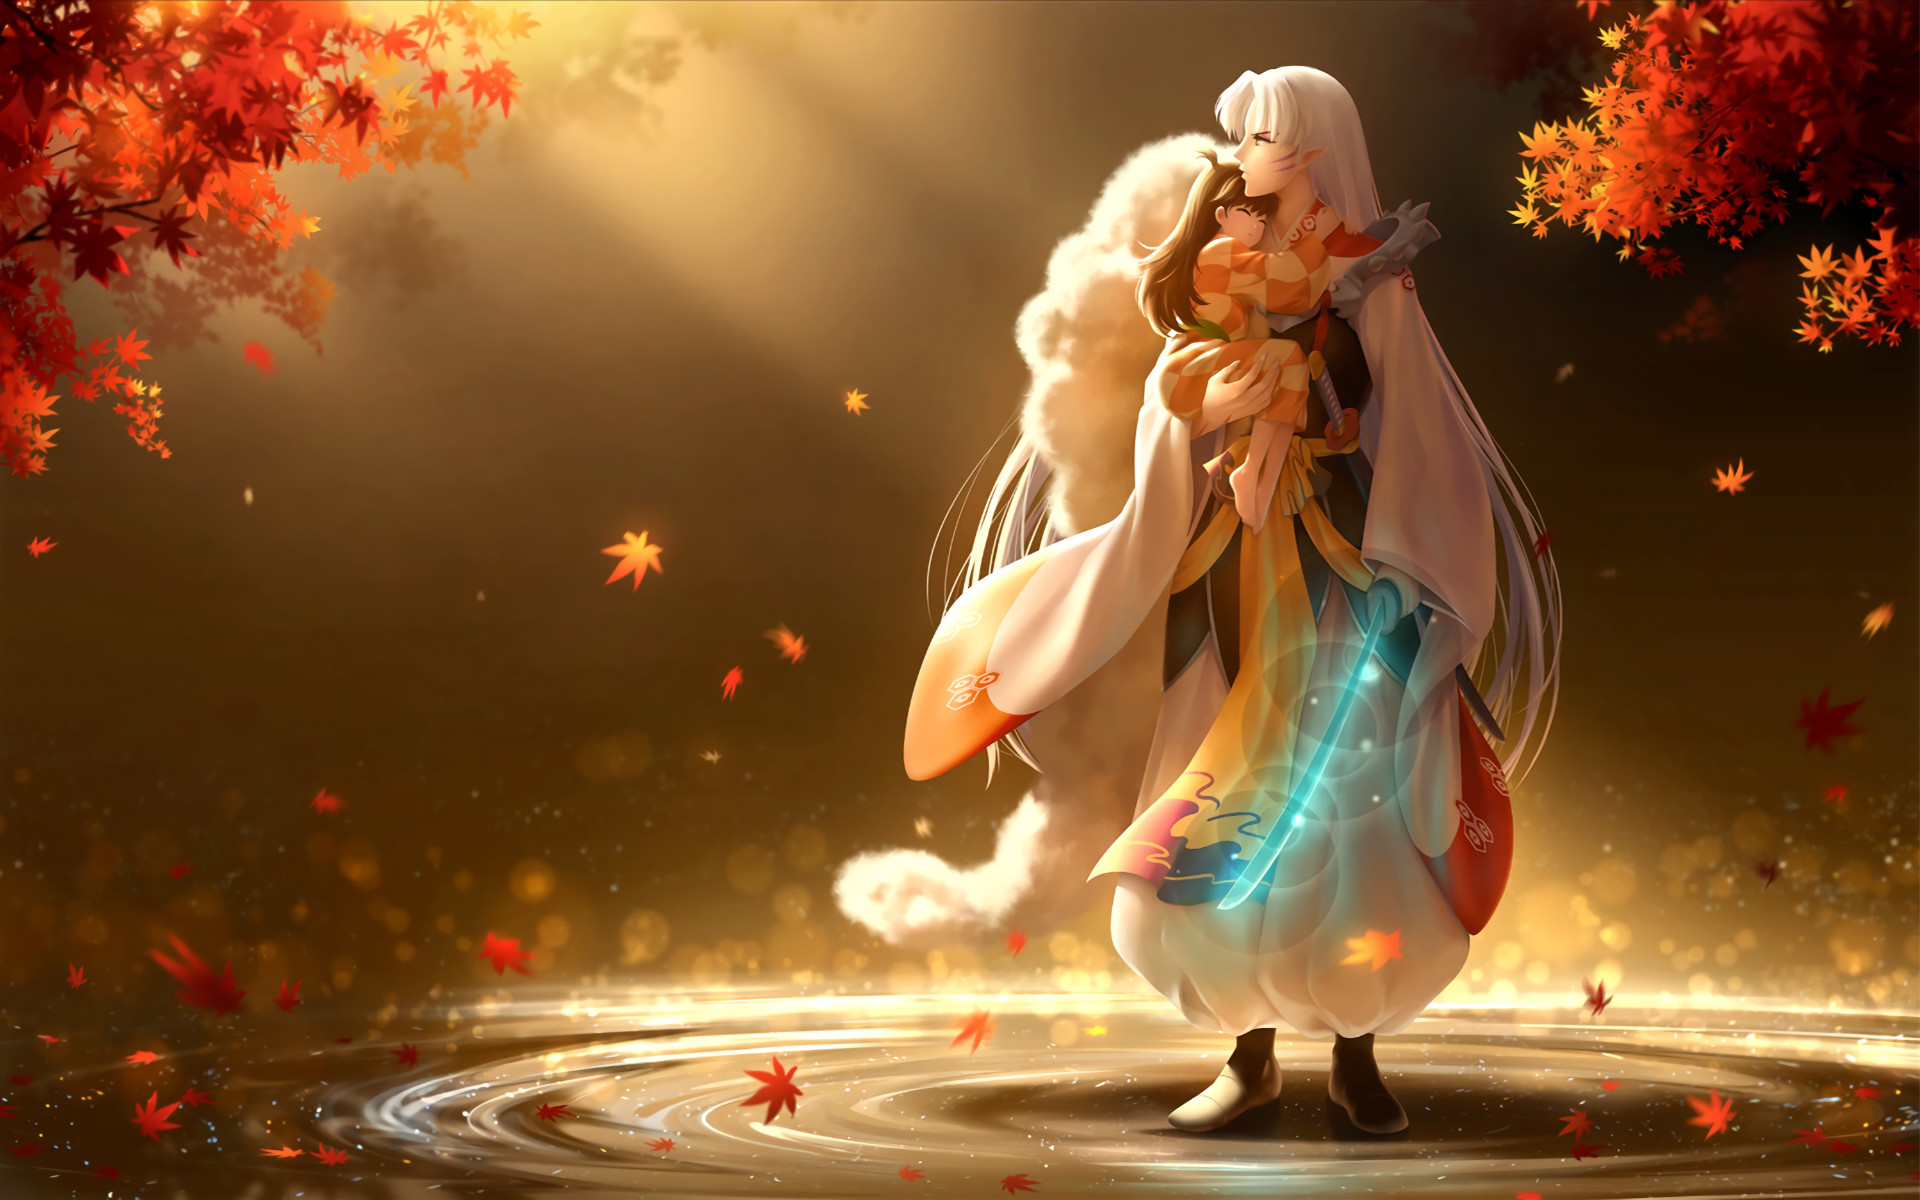 Inuyasha hd wallpapers 68 images - Download anime wallpaper hd for android ...